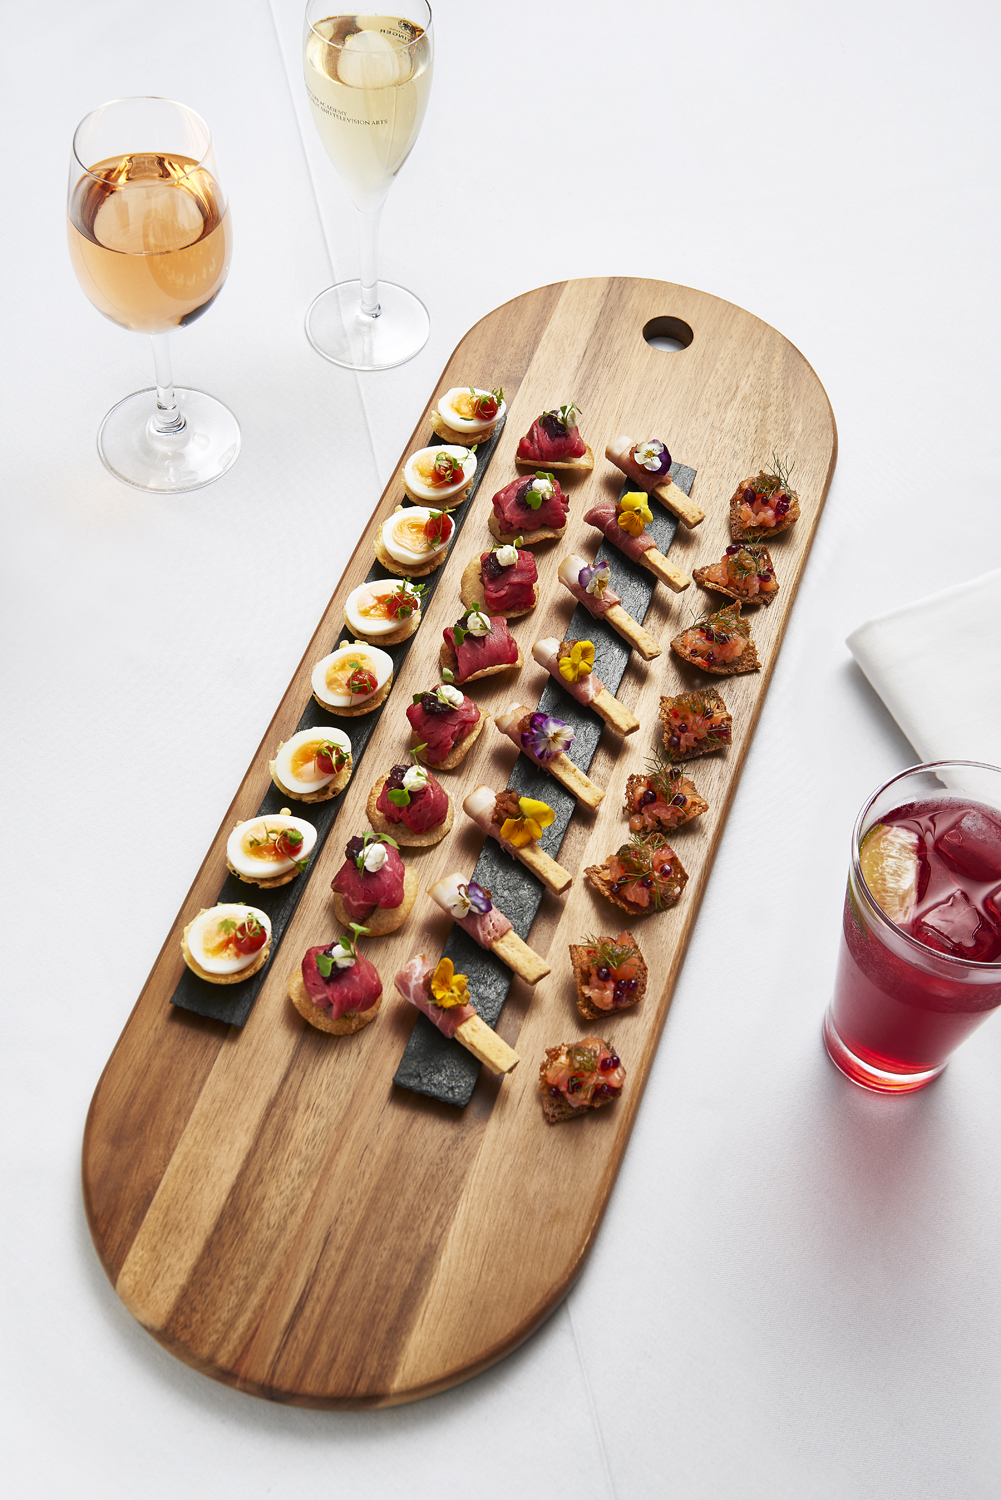 Food photographer by London food photographer Scott Grummett. Shooting for Bafta. Images of Canapés on sharing platters with drinks. Beef, eggs, ham and Salmon